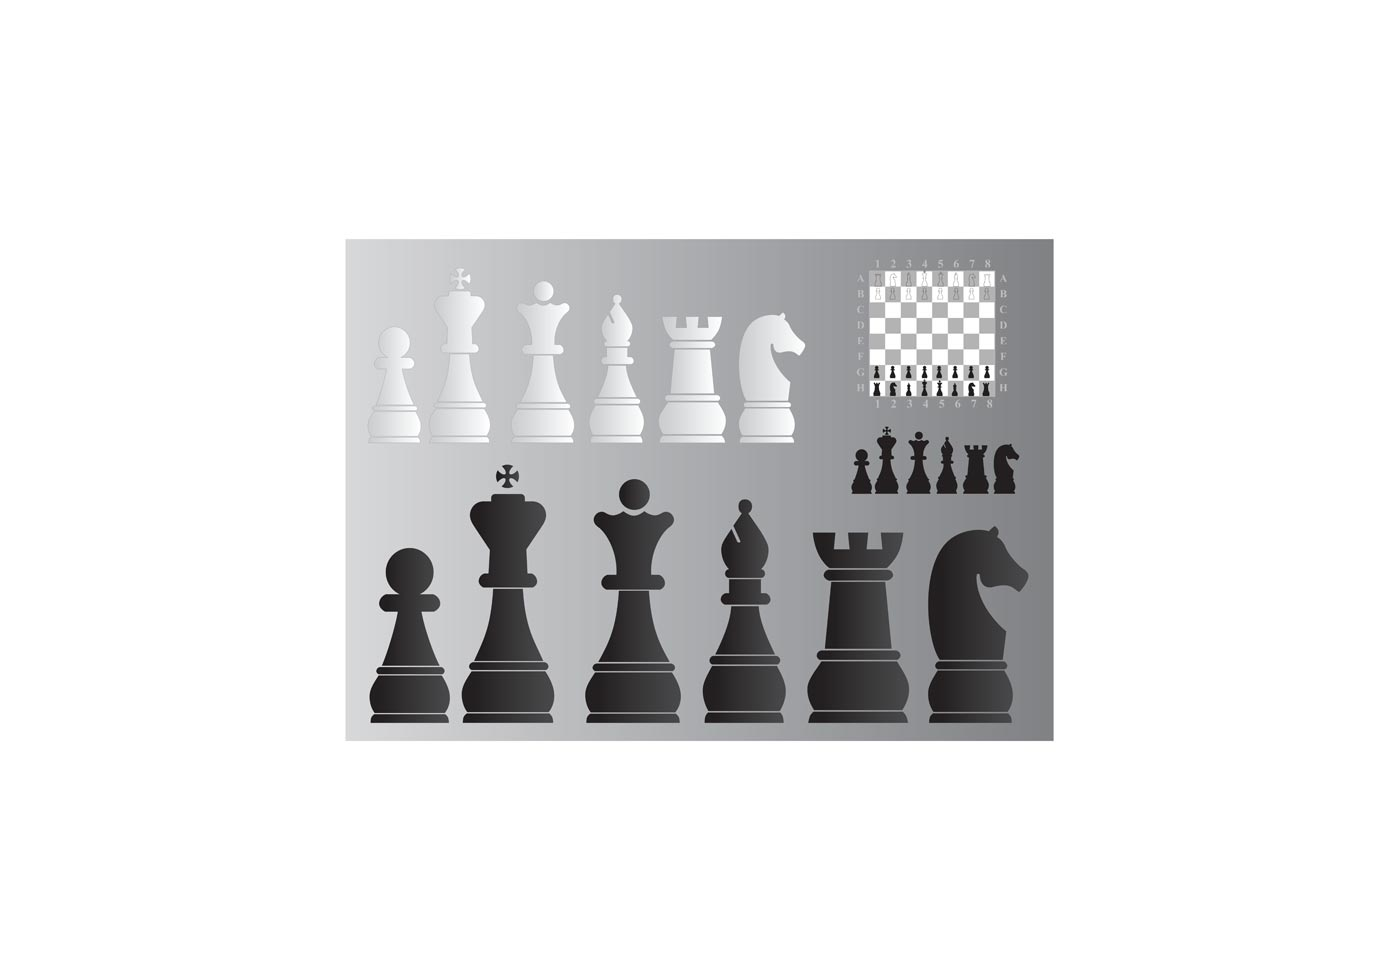 Chess Board and Pieces - Download Free Vector Art, Stock ...